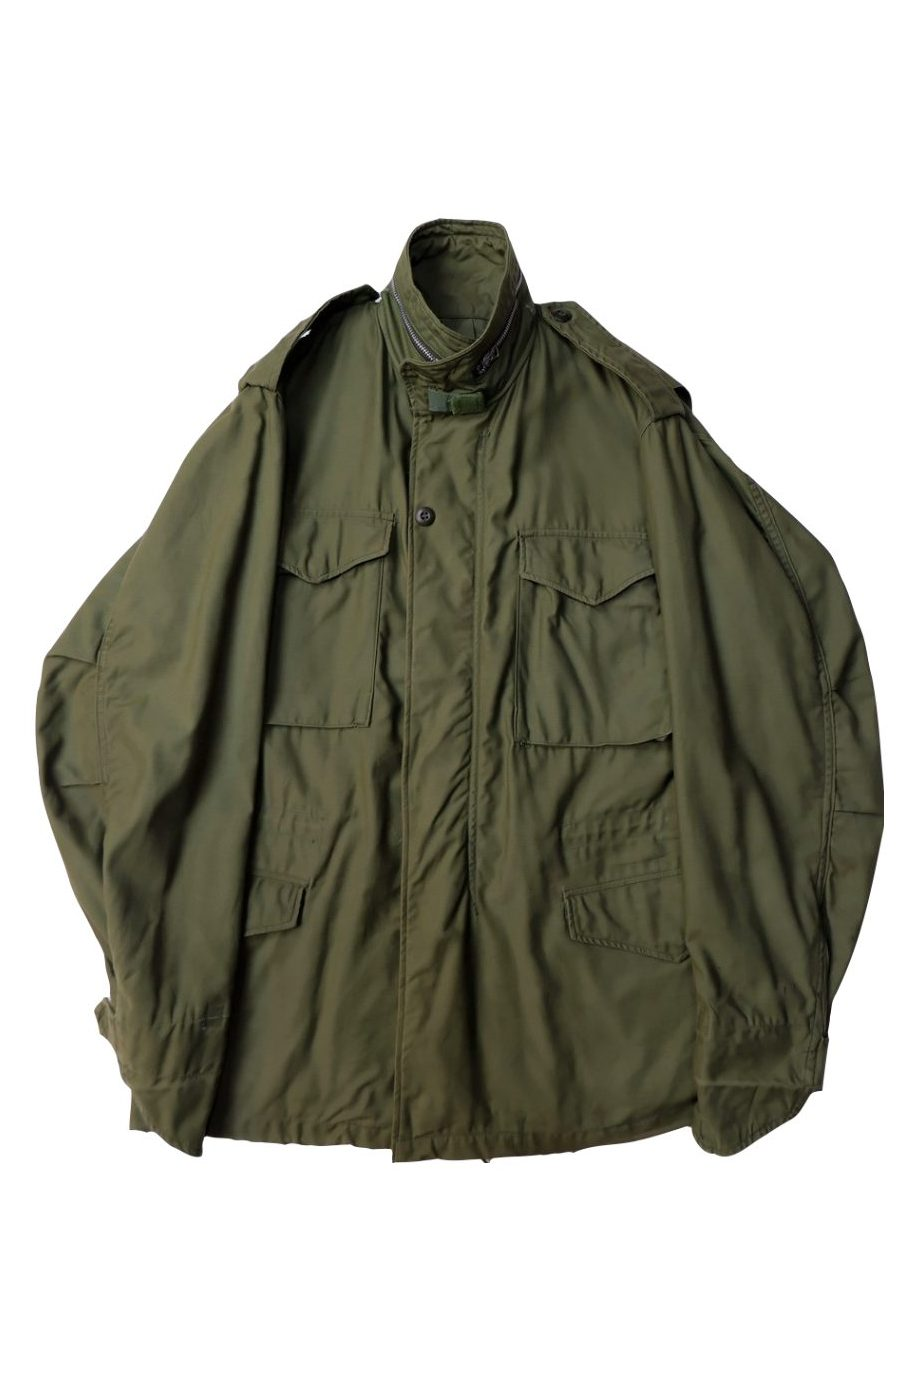 M-65 FIELD JACKET2nd